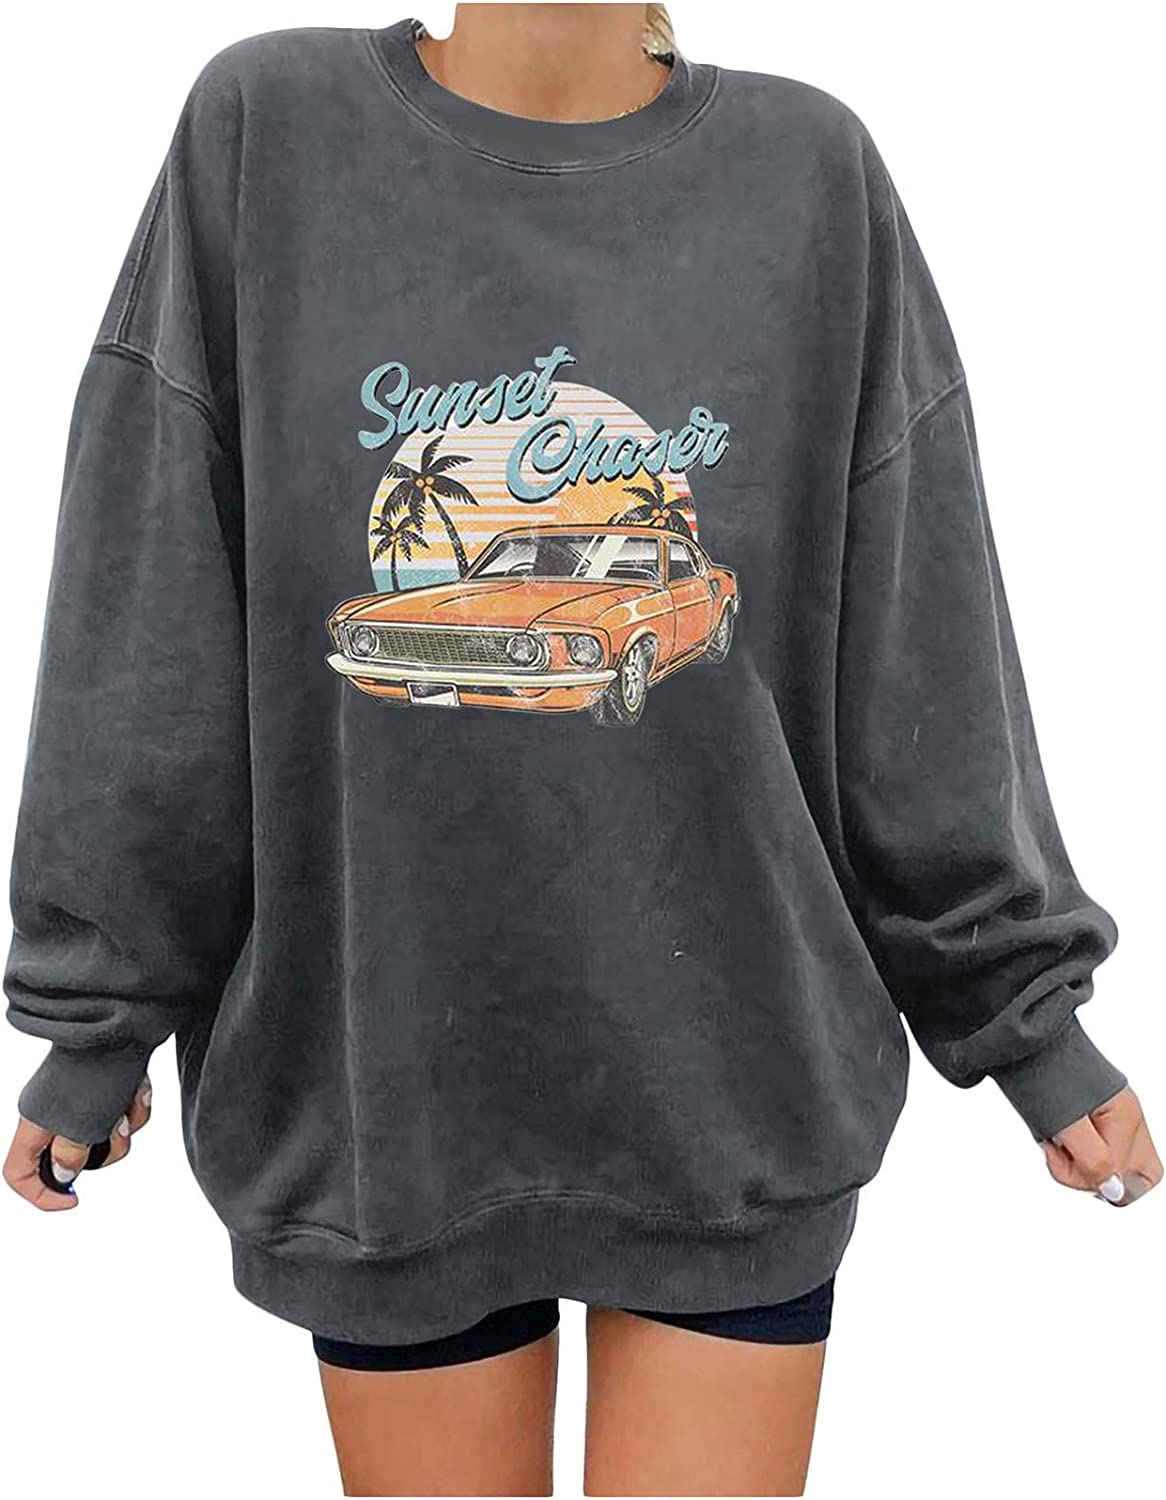 Women's Oversized Dressy All items in the store Tunic Blouse 5 ☆ popular Loose To Car Vintage Print